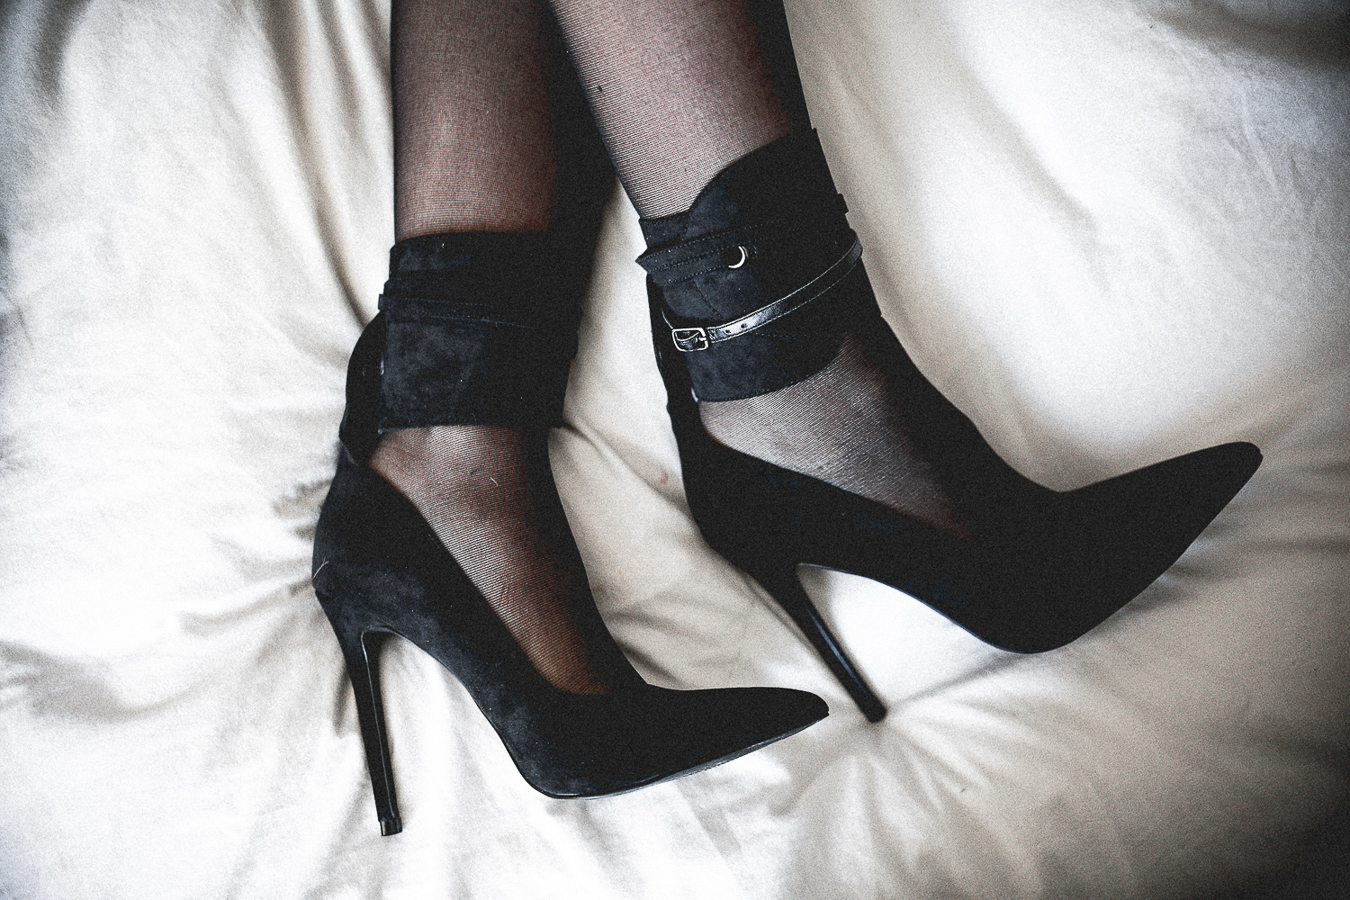 Le Happy wearing Nasty Gal ankle strap pumps